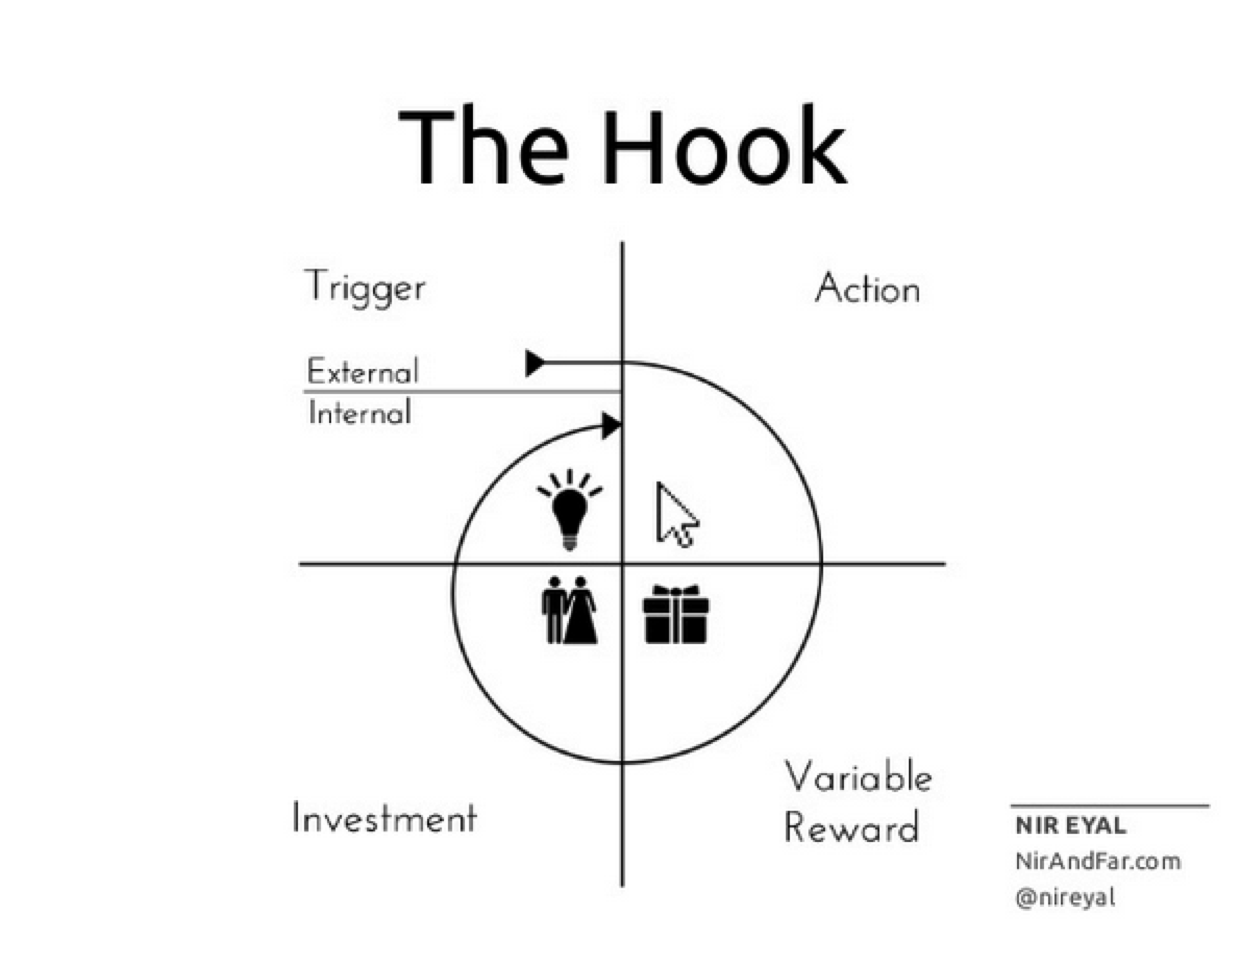 How Growthhackers Uses The Hook Model To Foster